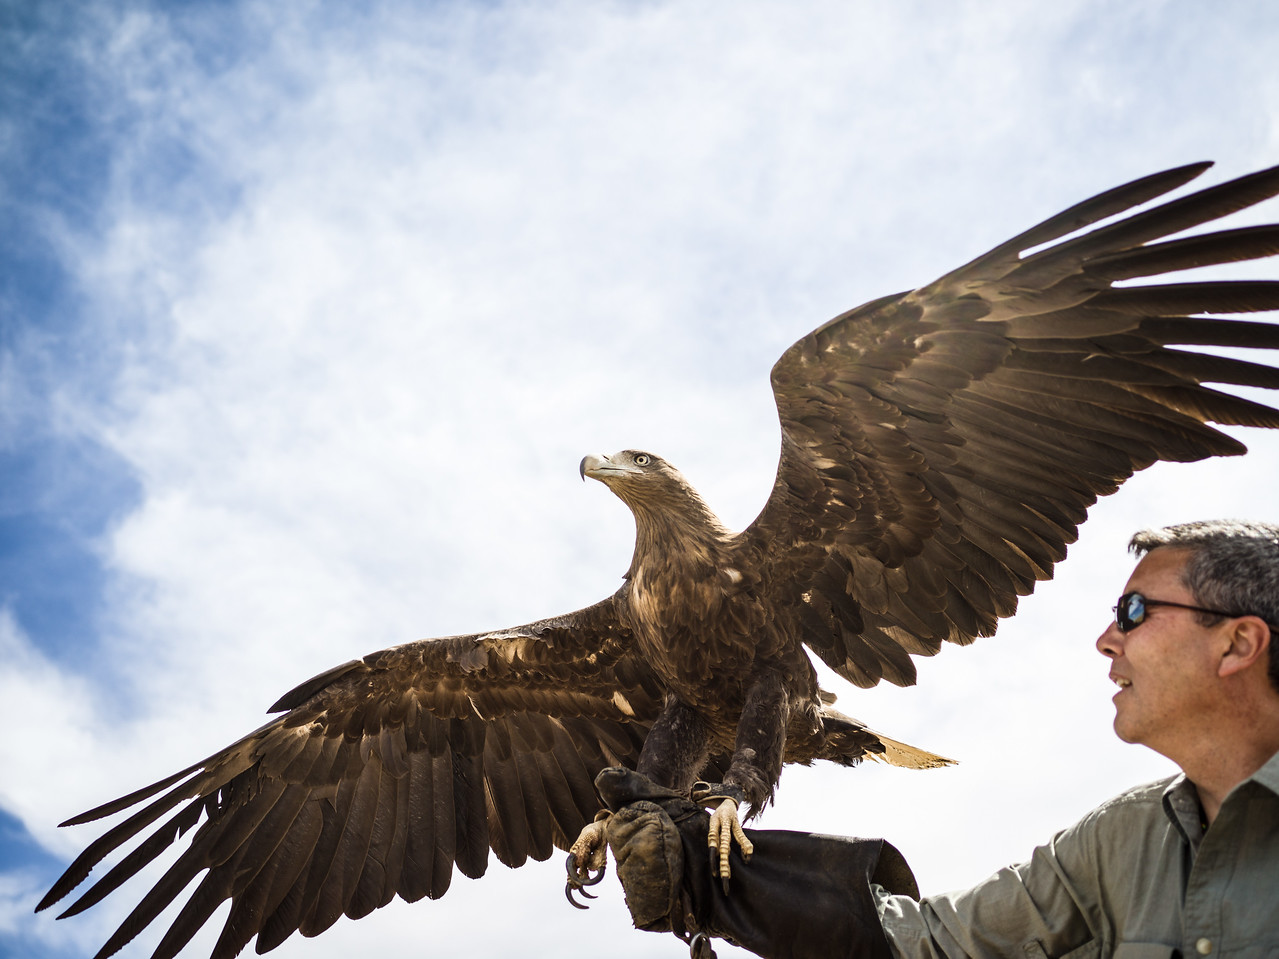 White-tailed eagle picture by Christopher Michel